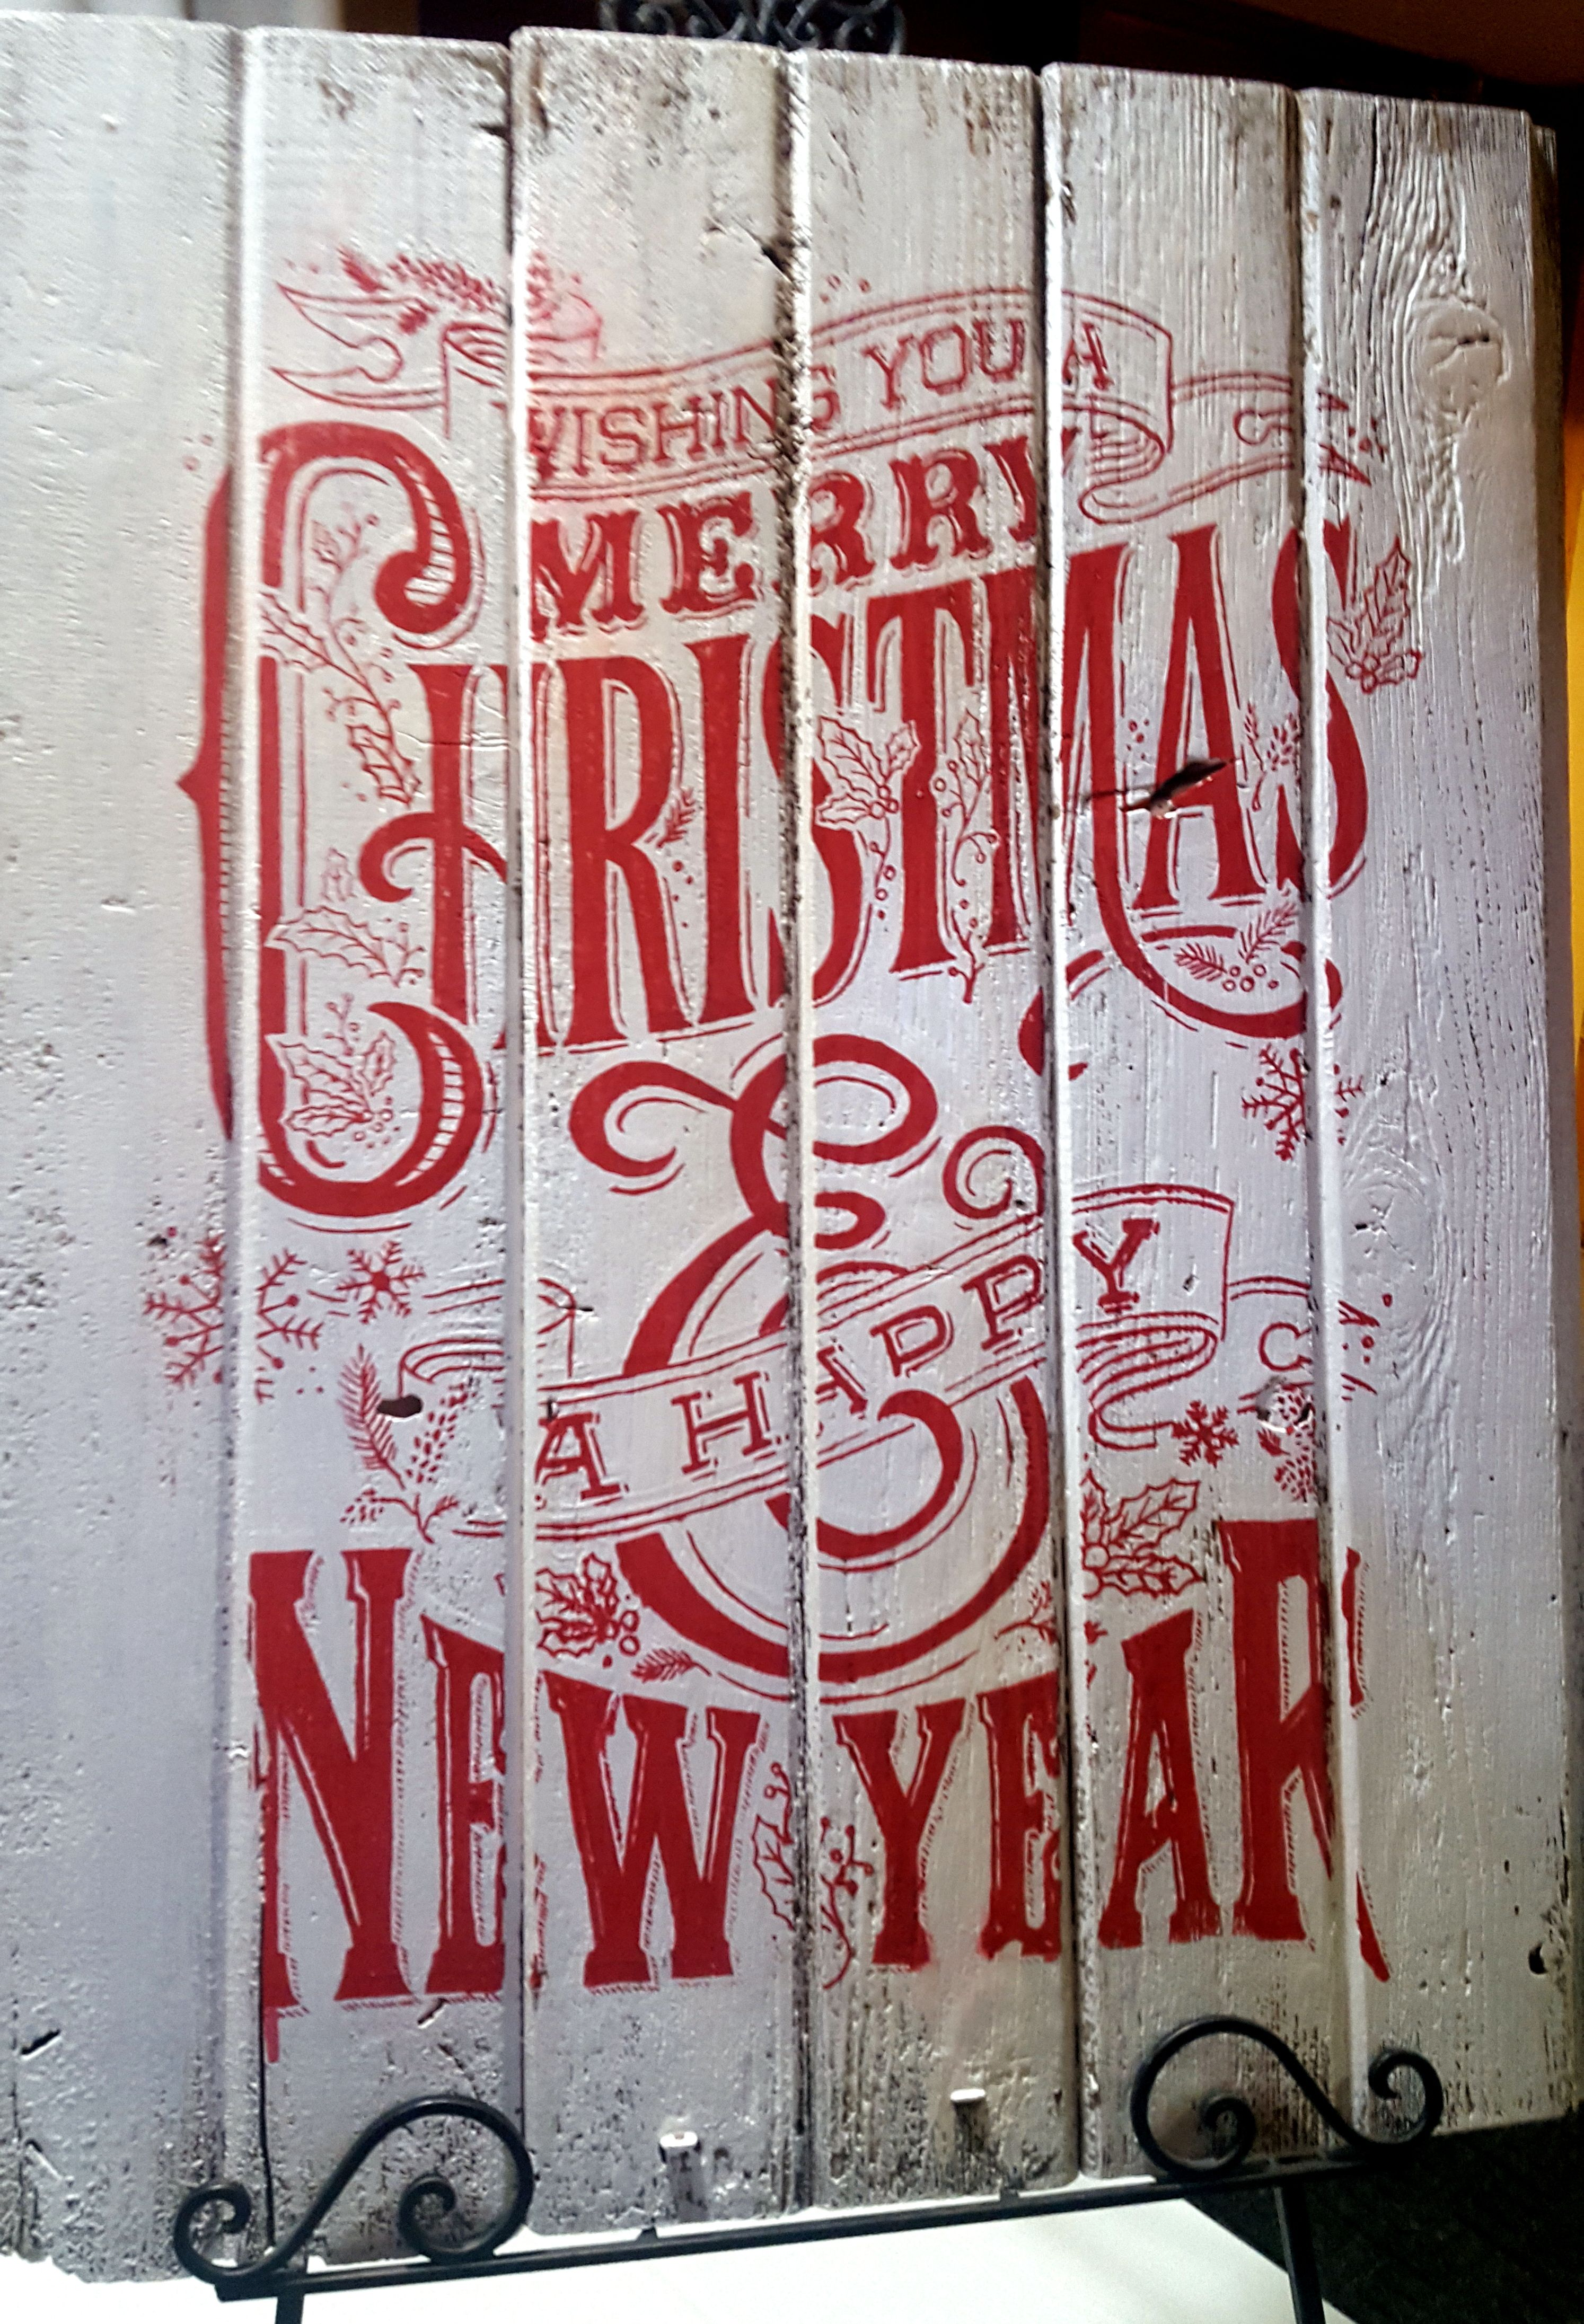 Chalk Couture Wishing You A Merry Christmas Chalk Transfer In Red Chalk Paste On Painted Boards Chalkcouture Via Bre Chalk Crafts Chalk Creations Chalk